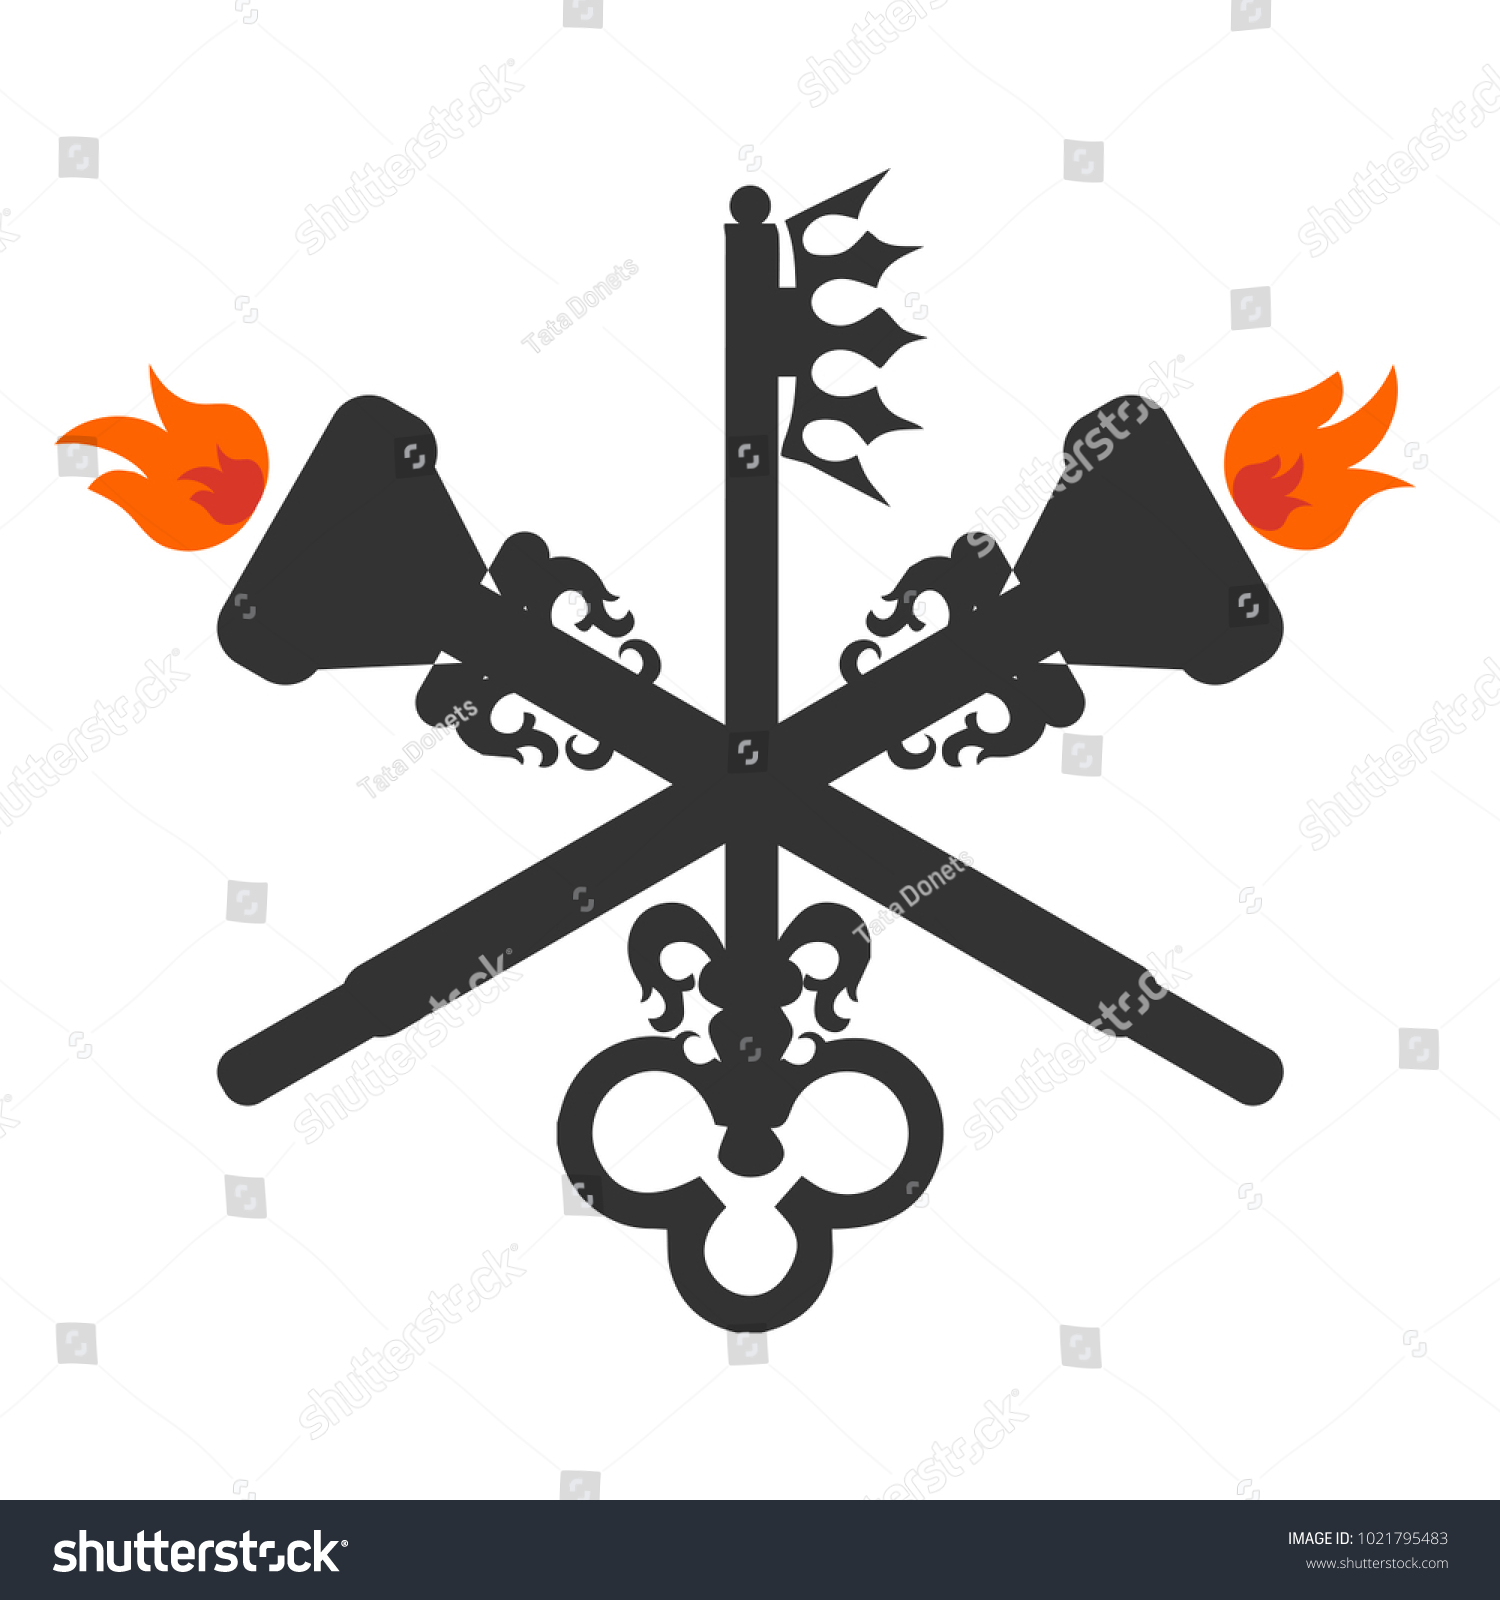 Goddess Hecate Known Triple Goddess Crone Stock Vector 1021795483